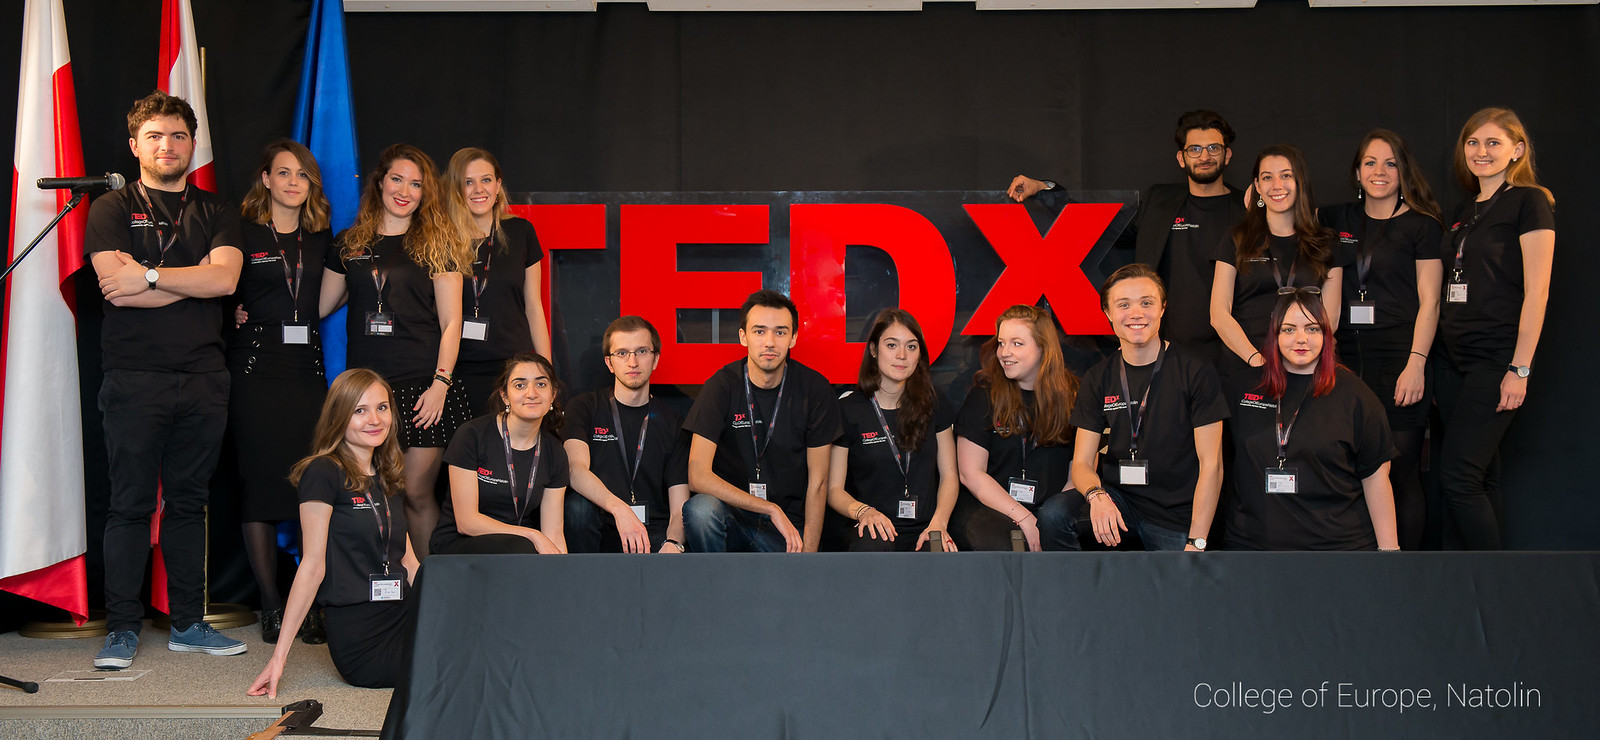 TEDx College of Europe Natolin. 6 April 2017